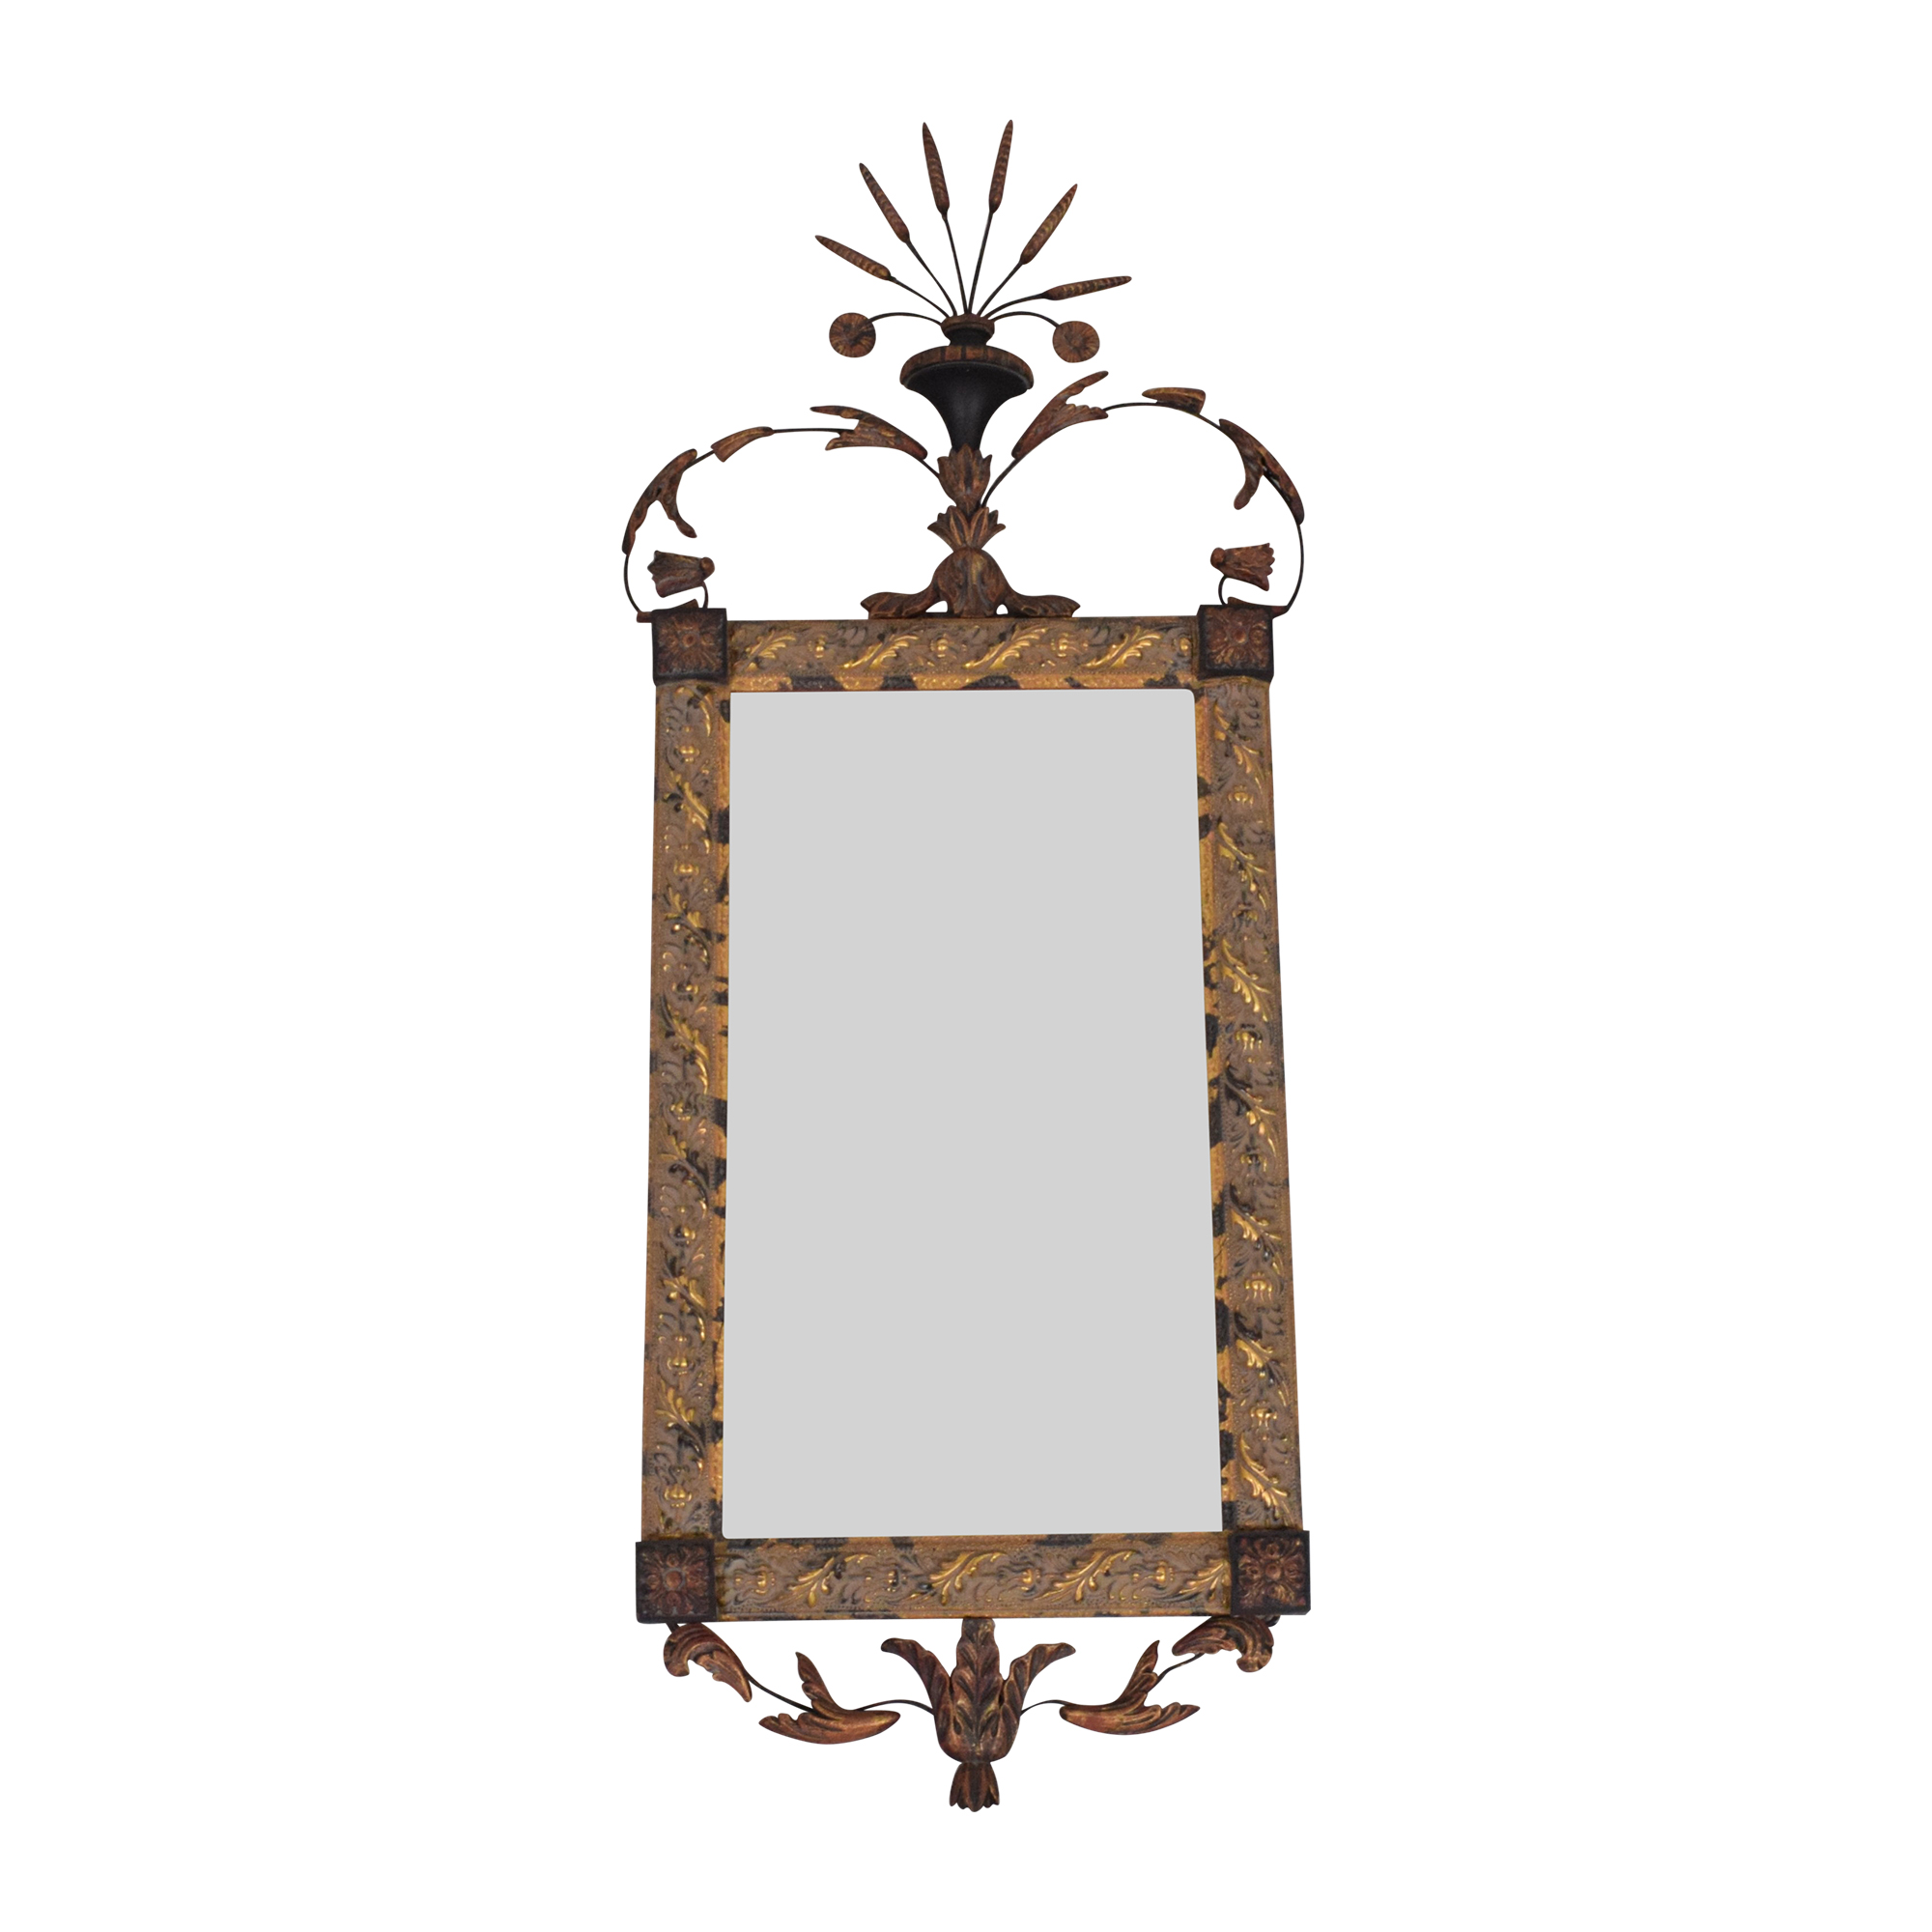 buy John-Richard John-Richard Decorative Wall Mirror online